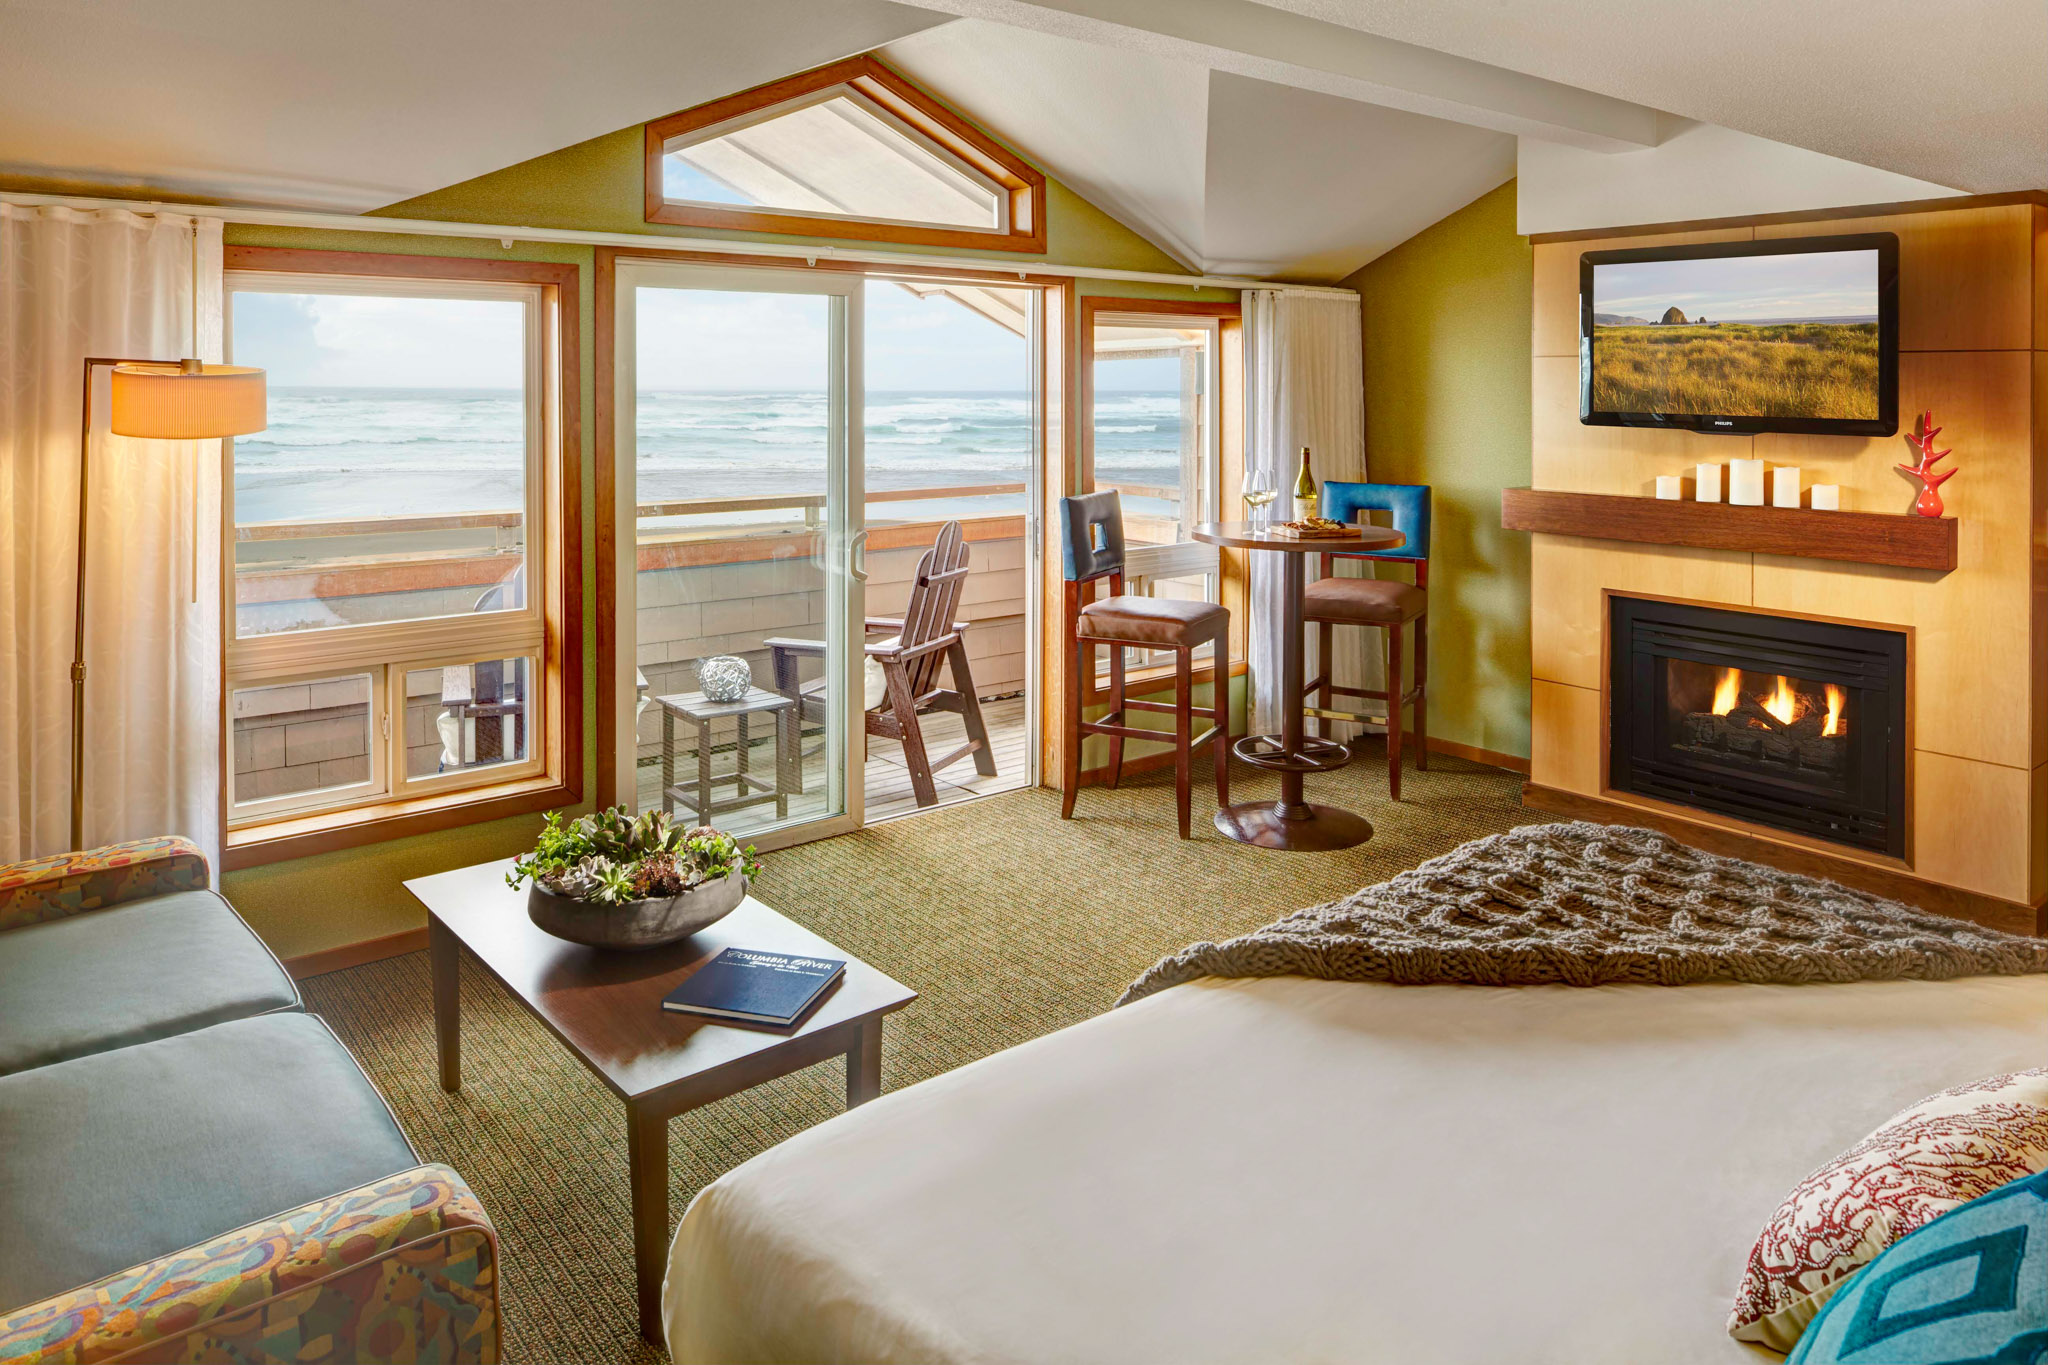 beachfront king studio hotel room looking out at the ocean